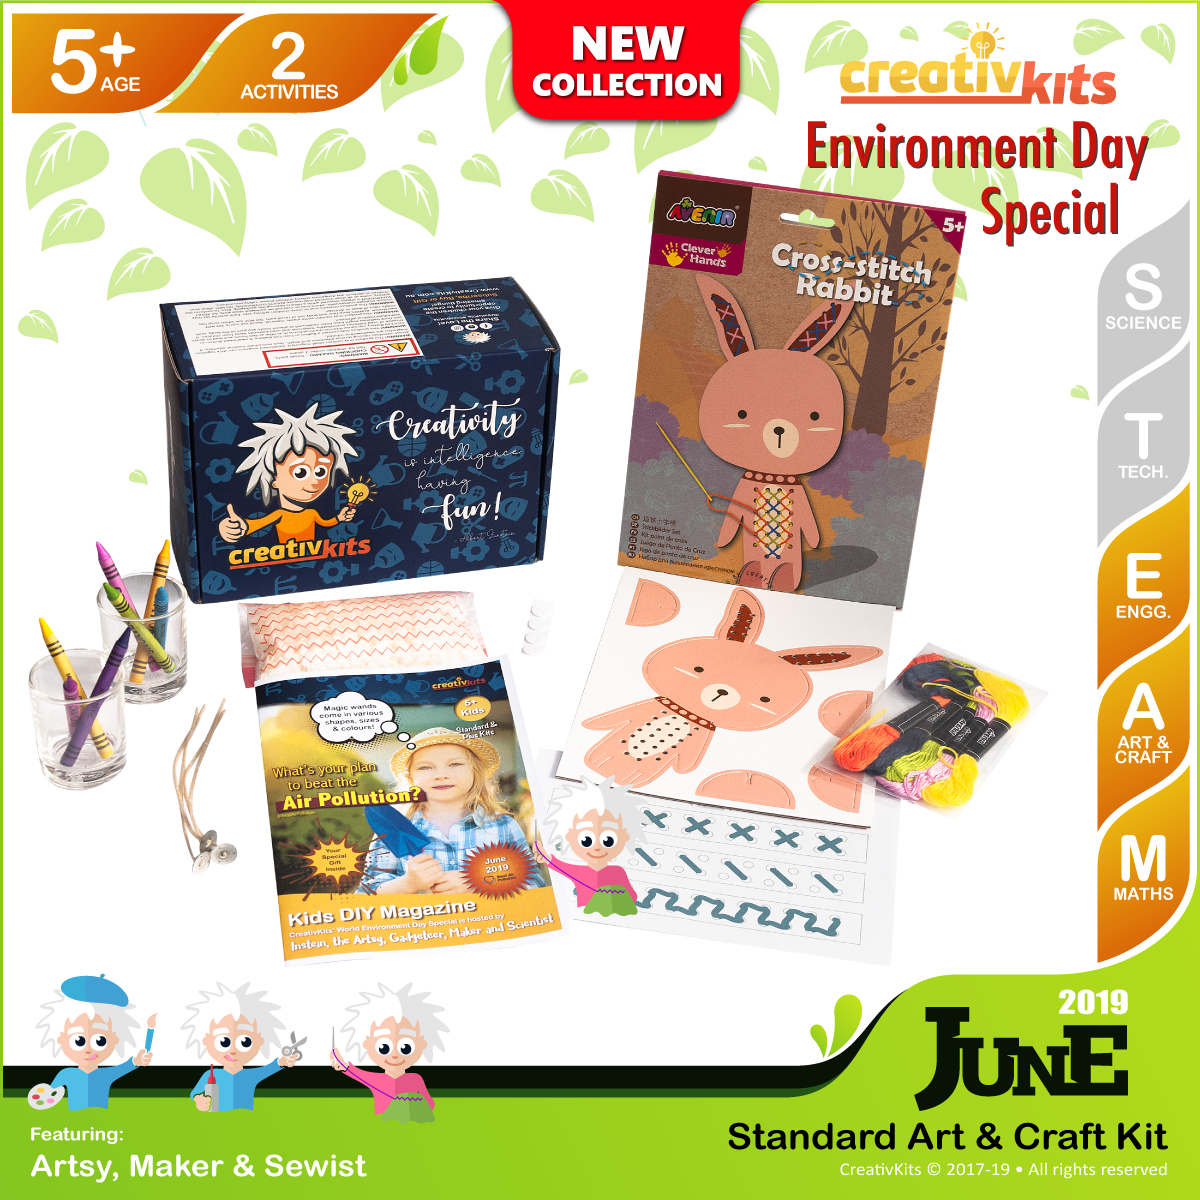 June Standard Art & Craft Kit • Age 5 plus • Handmade Wax Candles and Cross Stitch Animal Art